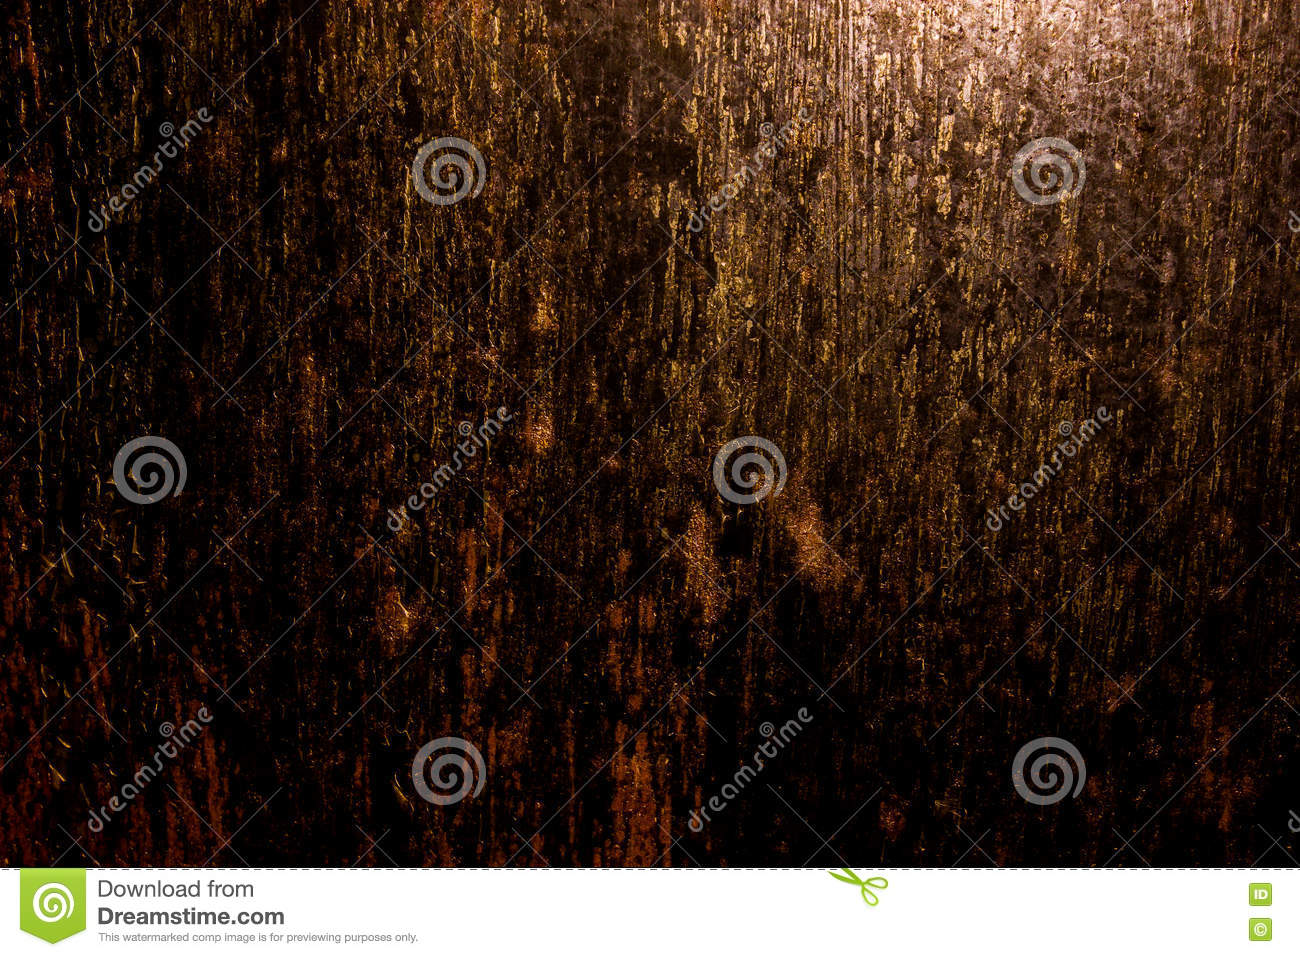 Dark old scary rusty rough golden and copper metal surface texture/background for Halloween or haunted house games